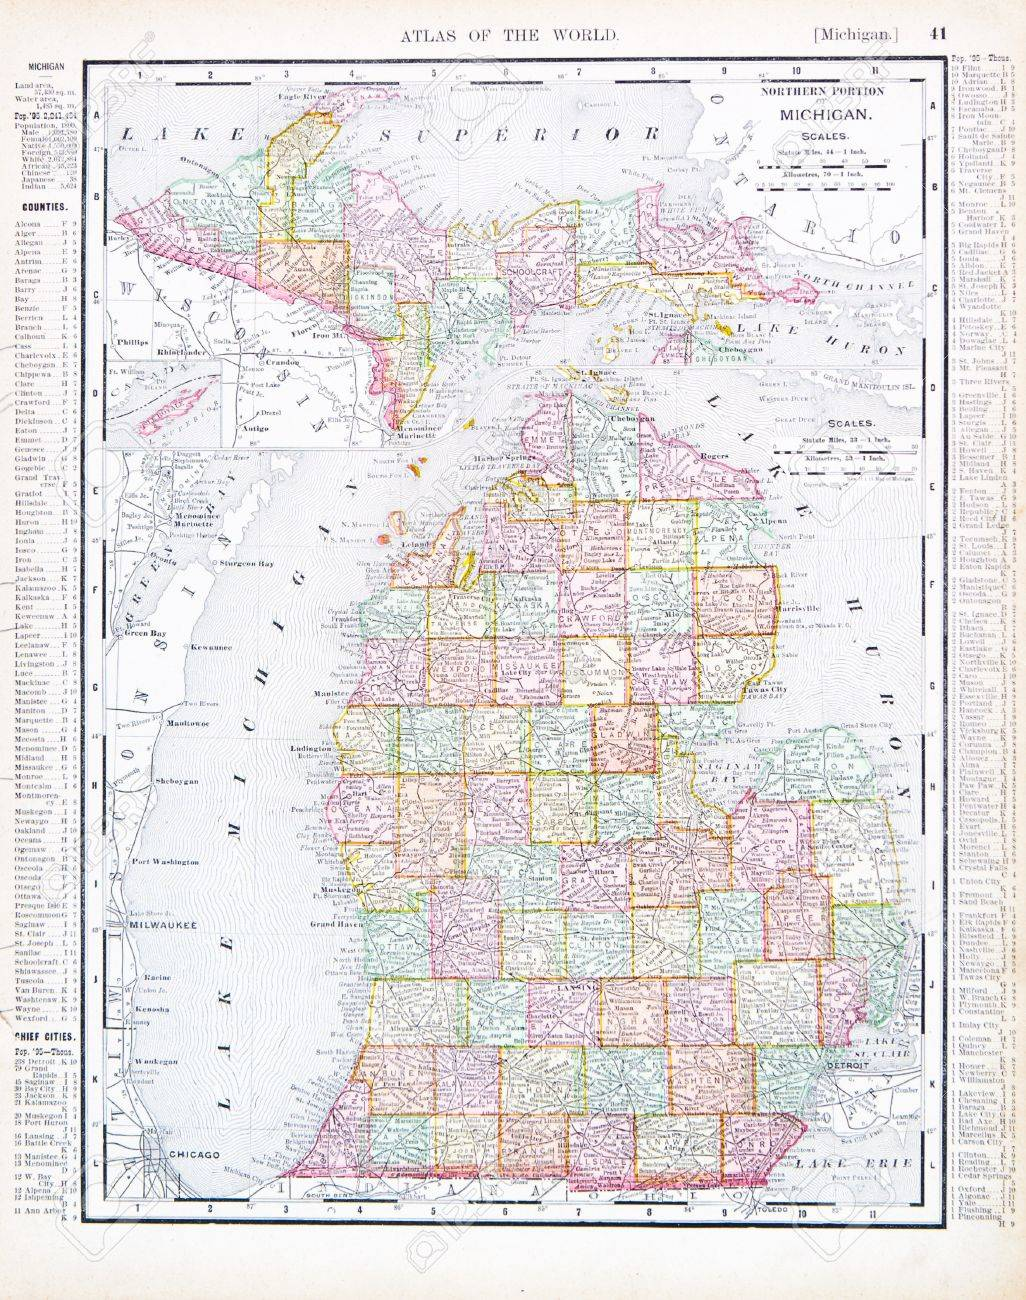 Vintage Map Of The State Of Michigan United States 1900 Stock Po 11026137